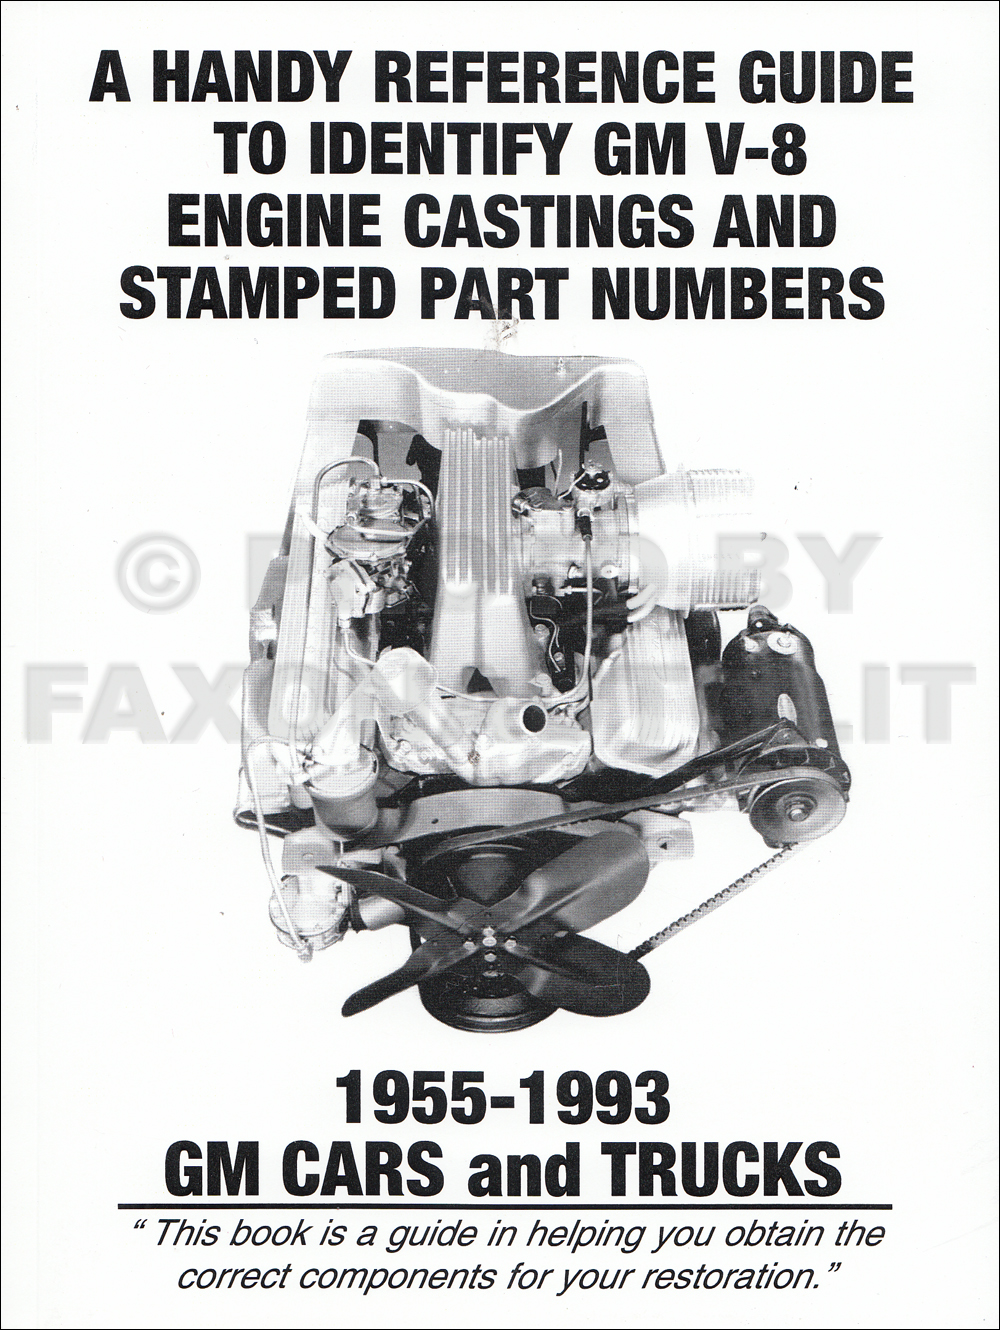 1955-1993 Handy Reference Guide to Identify Chevy V-8 Engine Castings and Stamped Part Numbers